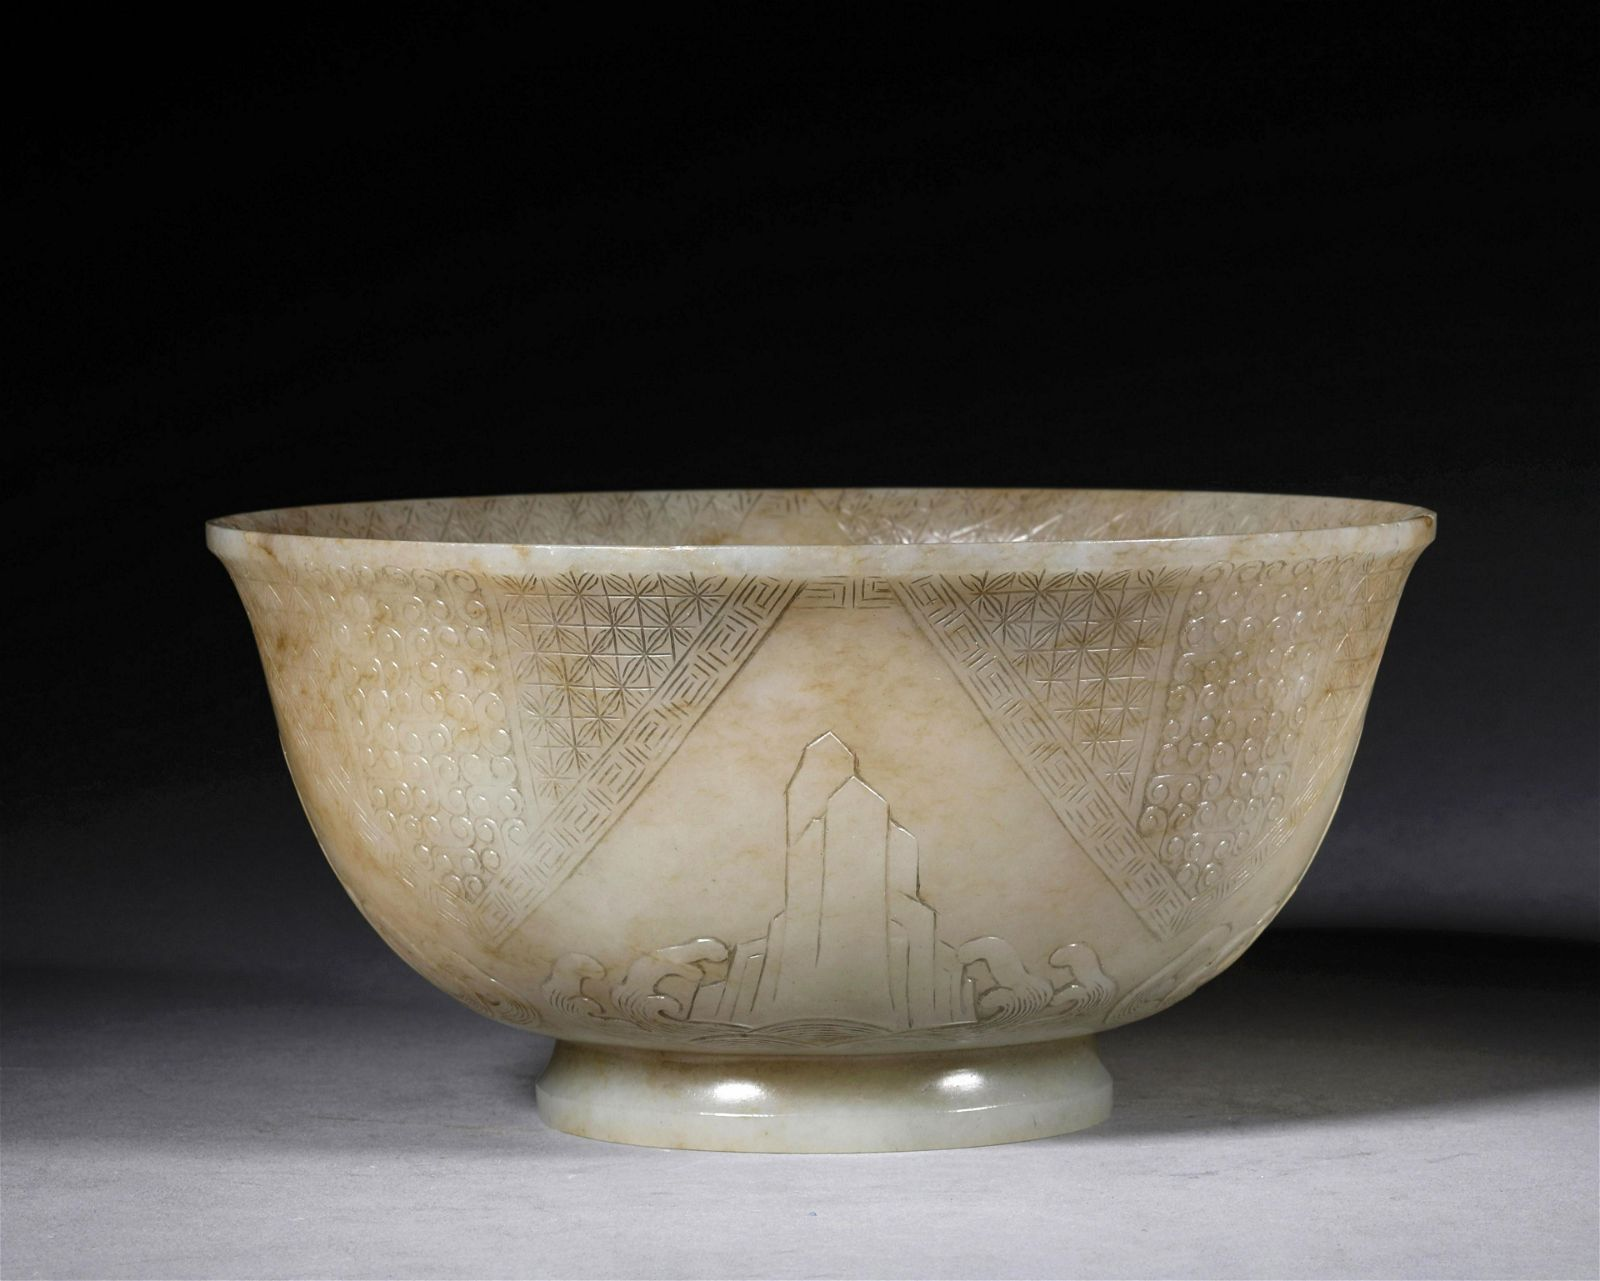 A QING DYNASTY CARVED WHITE JADE BOWL